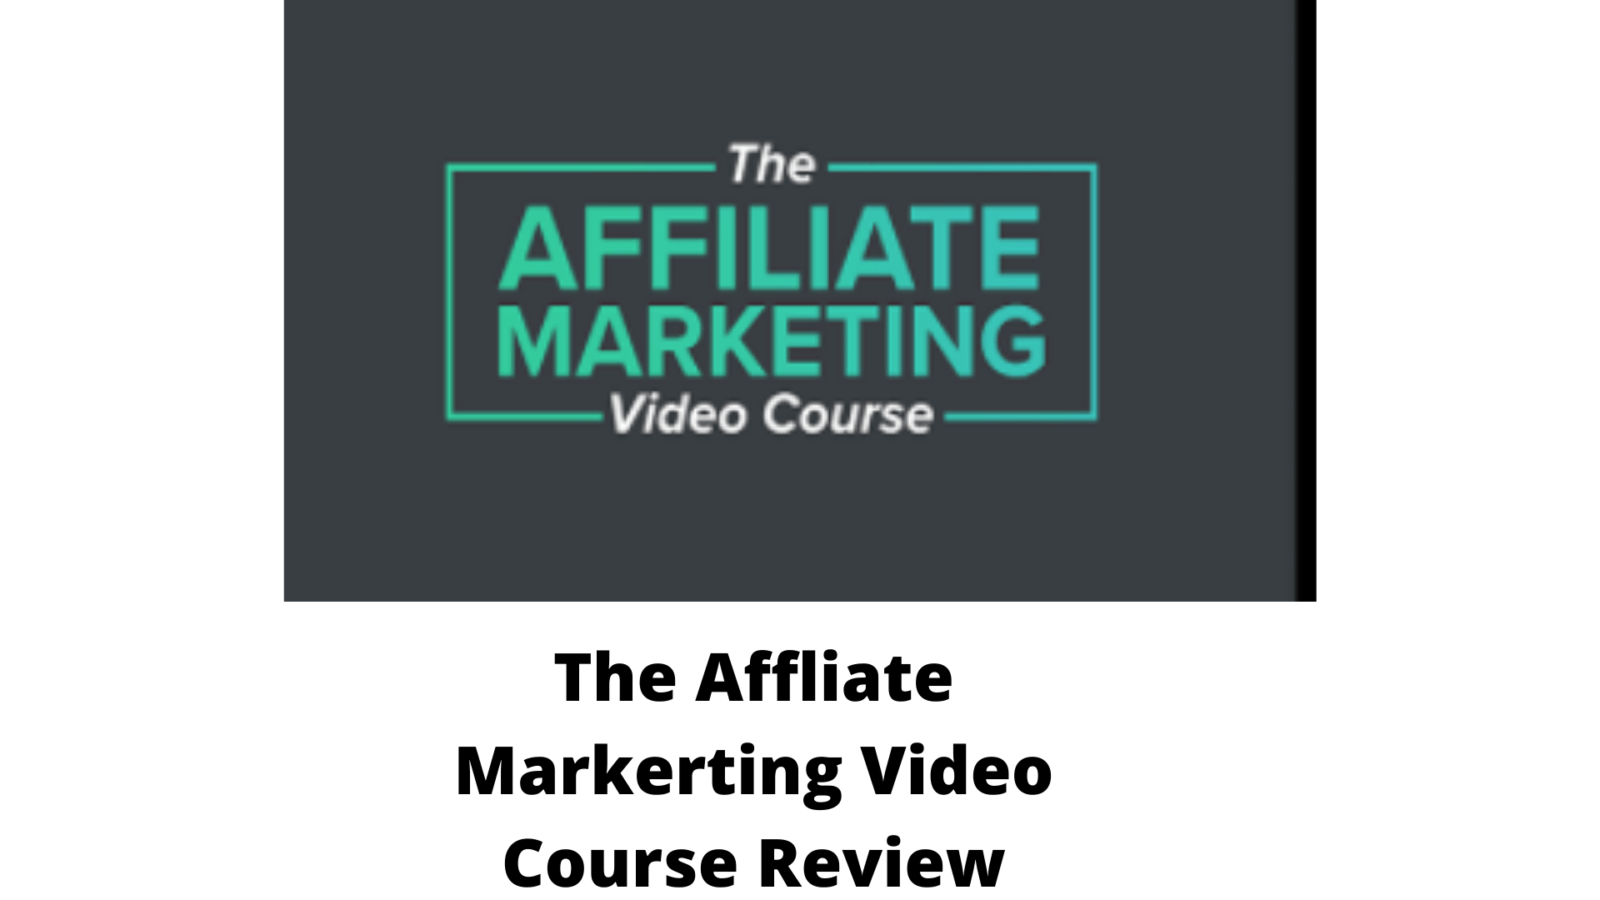 The affiliate marketing video course review